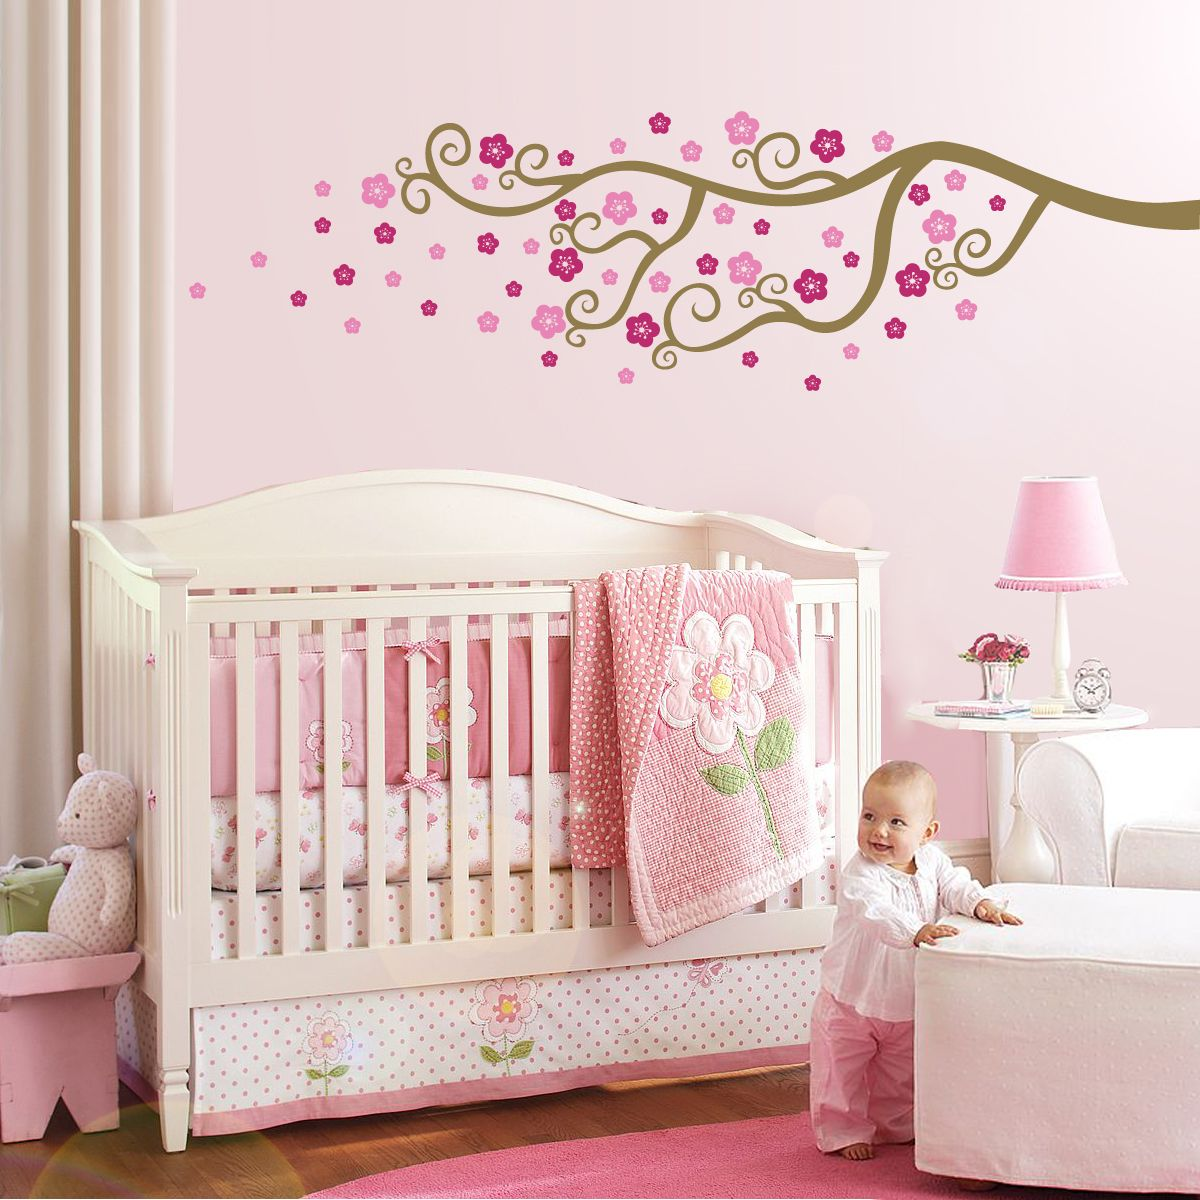 Creative Paint Ideas For Kids Bedroom Captivating Pink Tree Wall